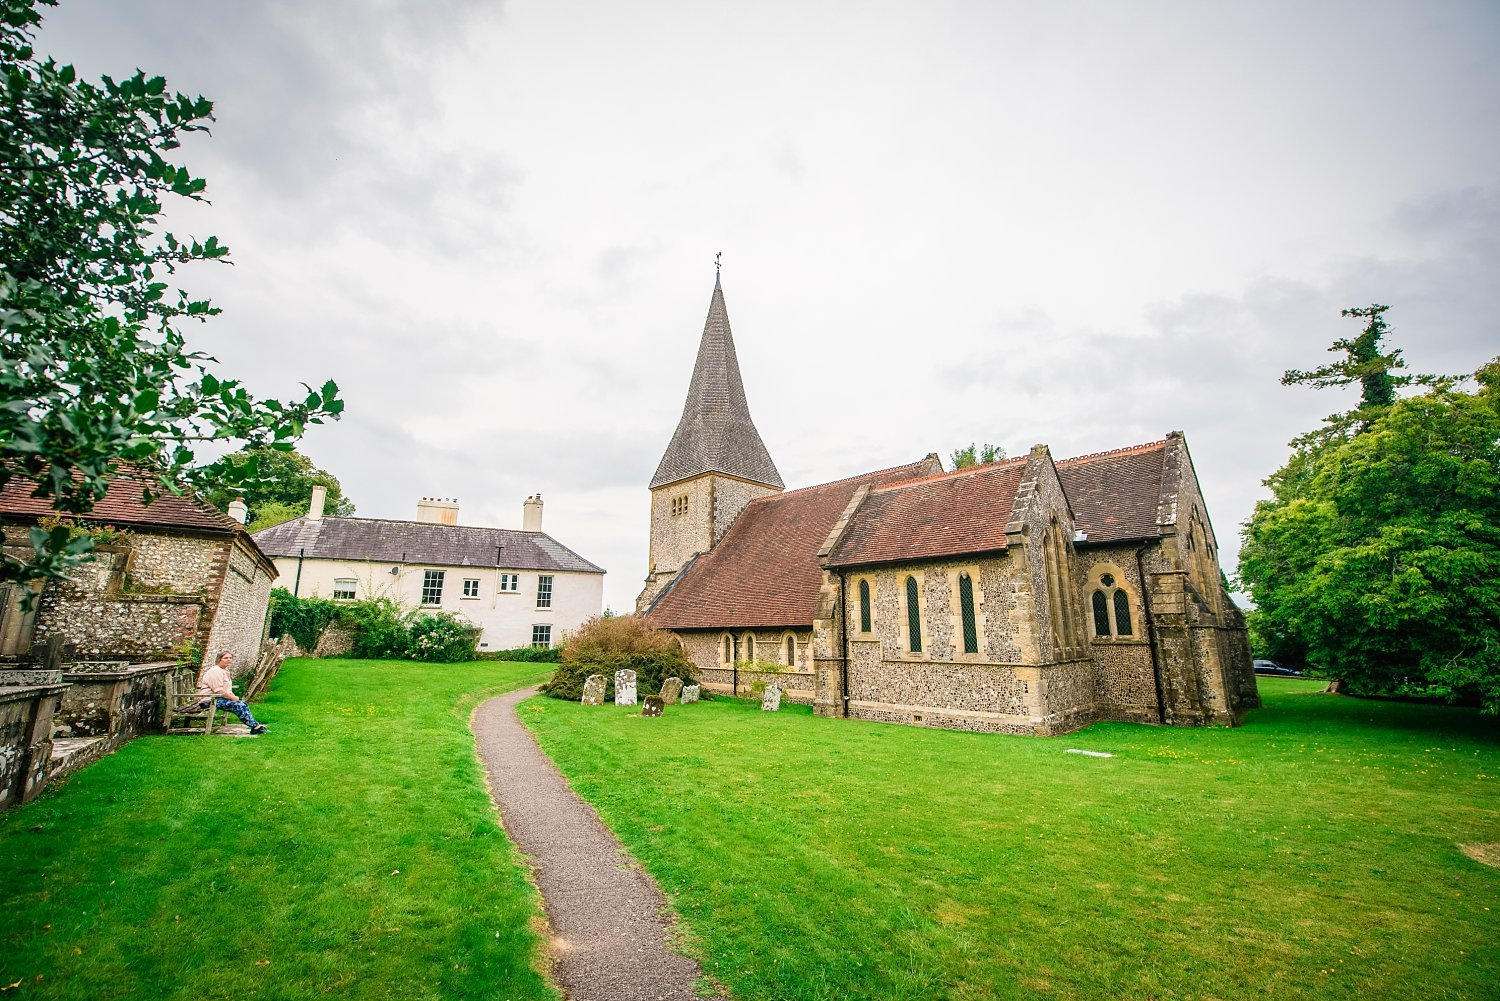 Duncton Mill Fishery Wedding - church where bride and groom got married